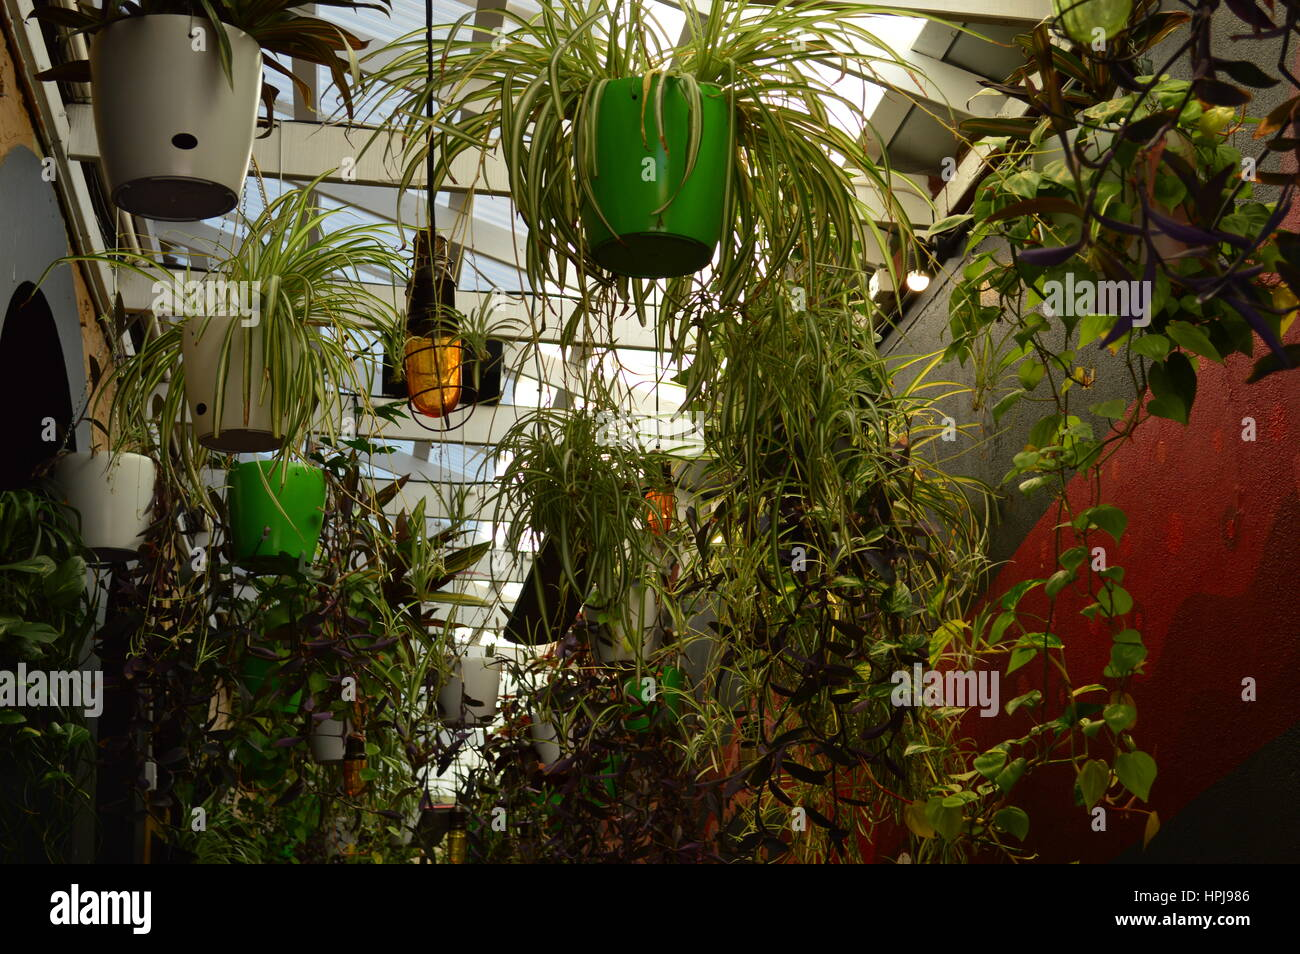 Roof Garden Bar Stock Photos & Roof Garden Bar Stock Images - Alamy